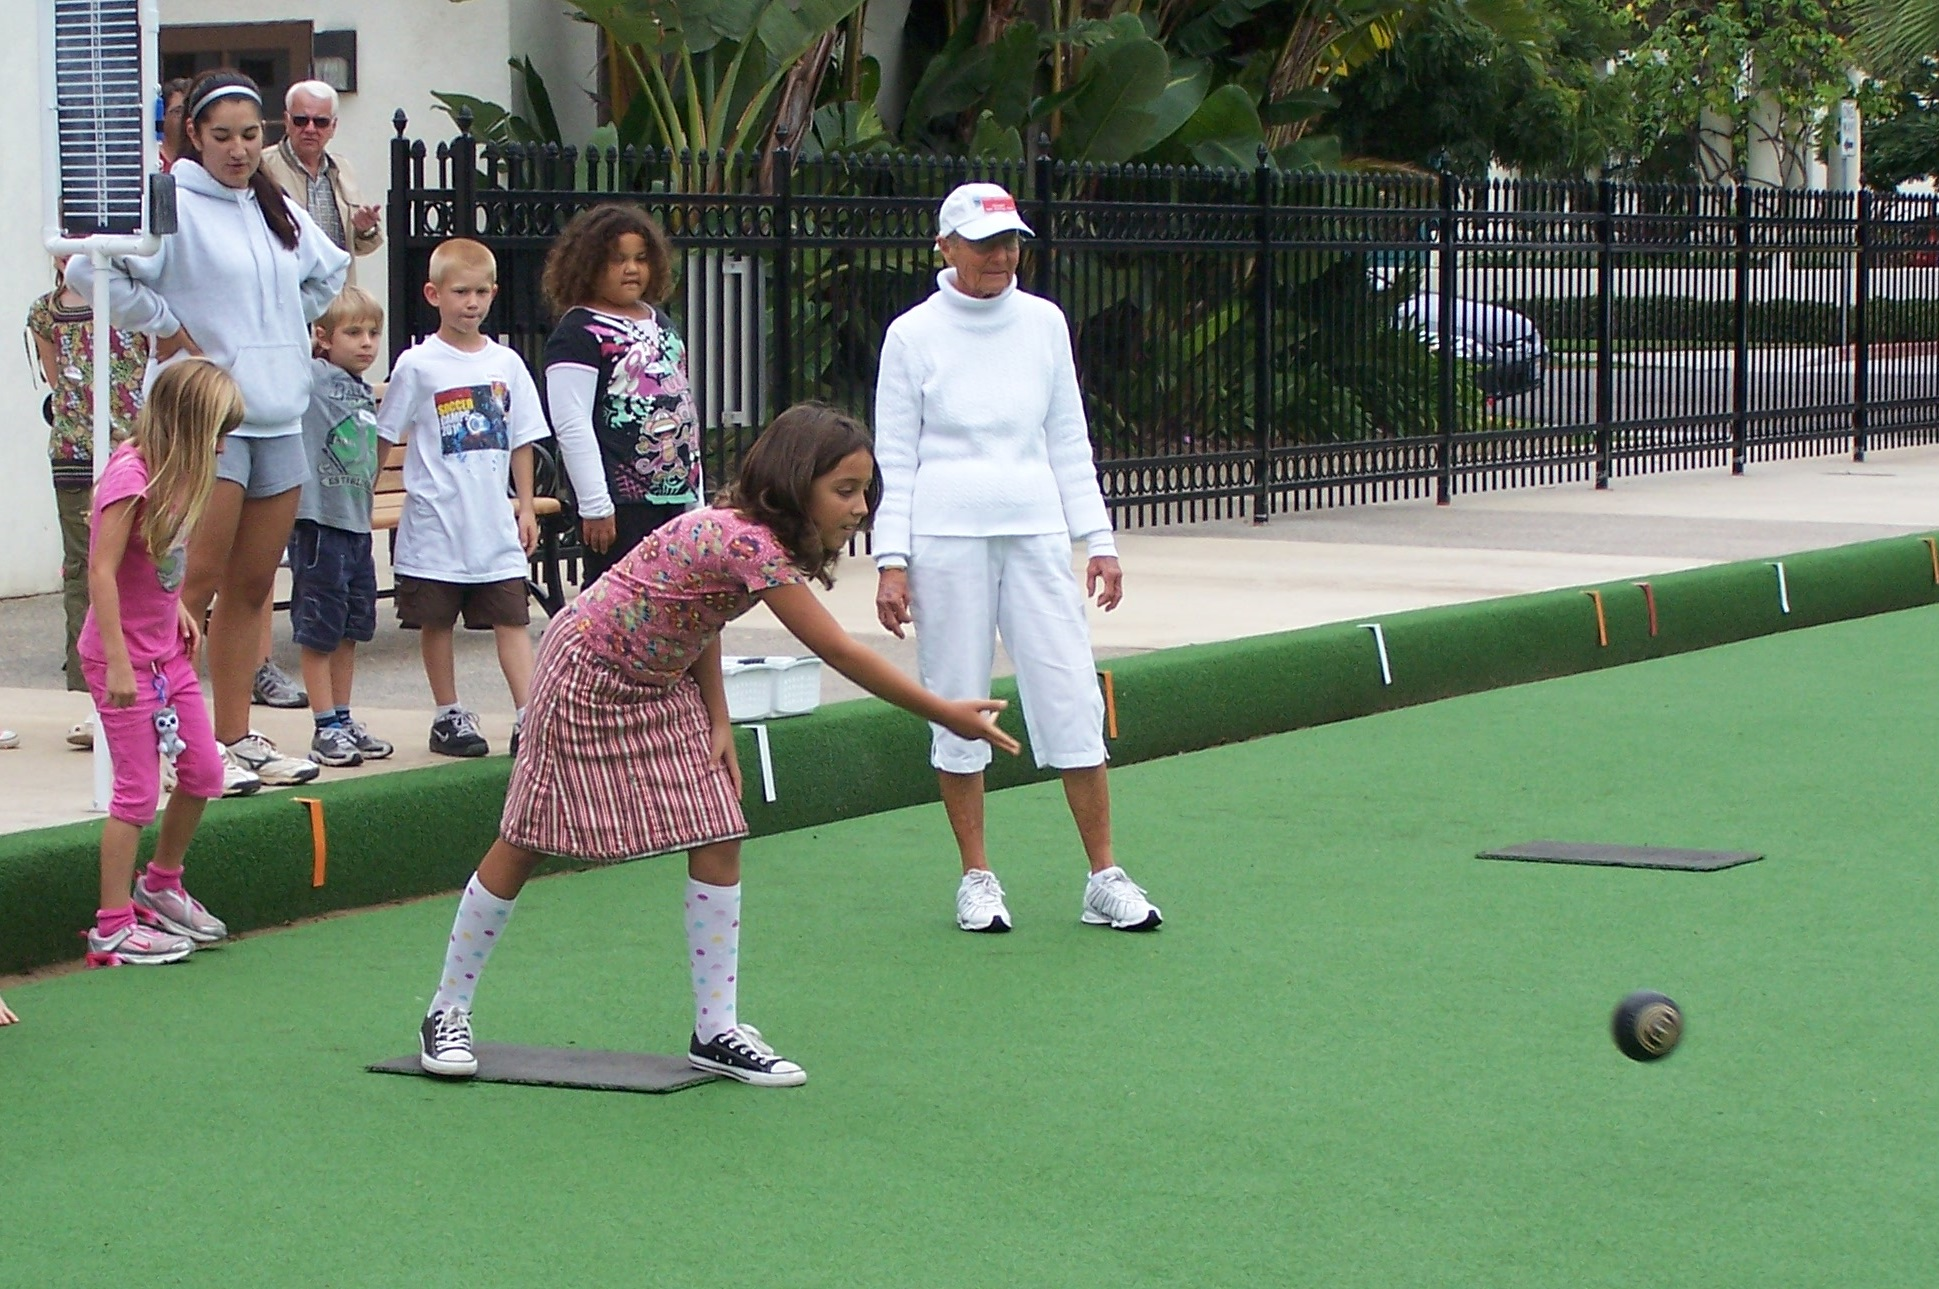 youth lawn bowling